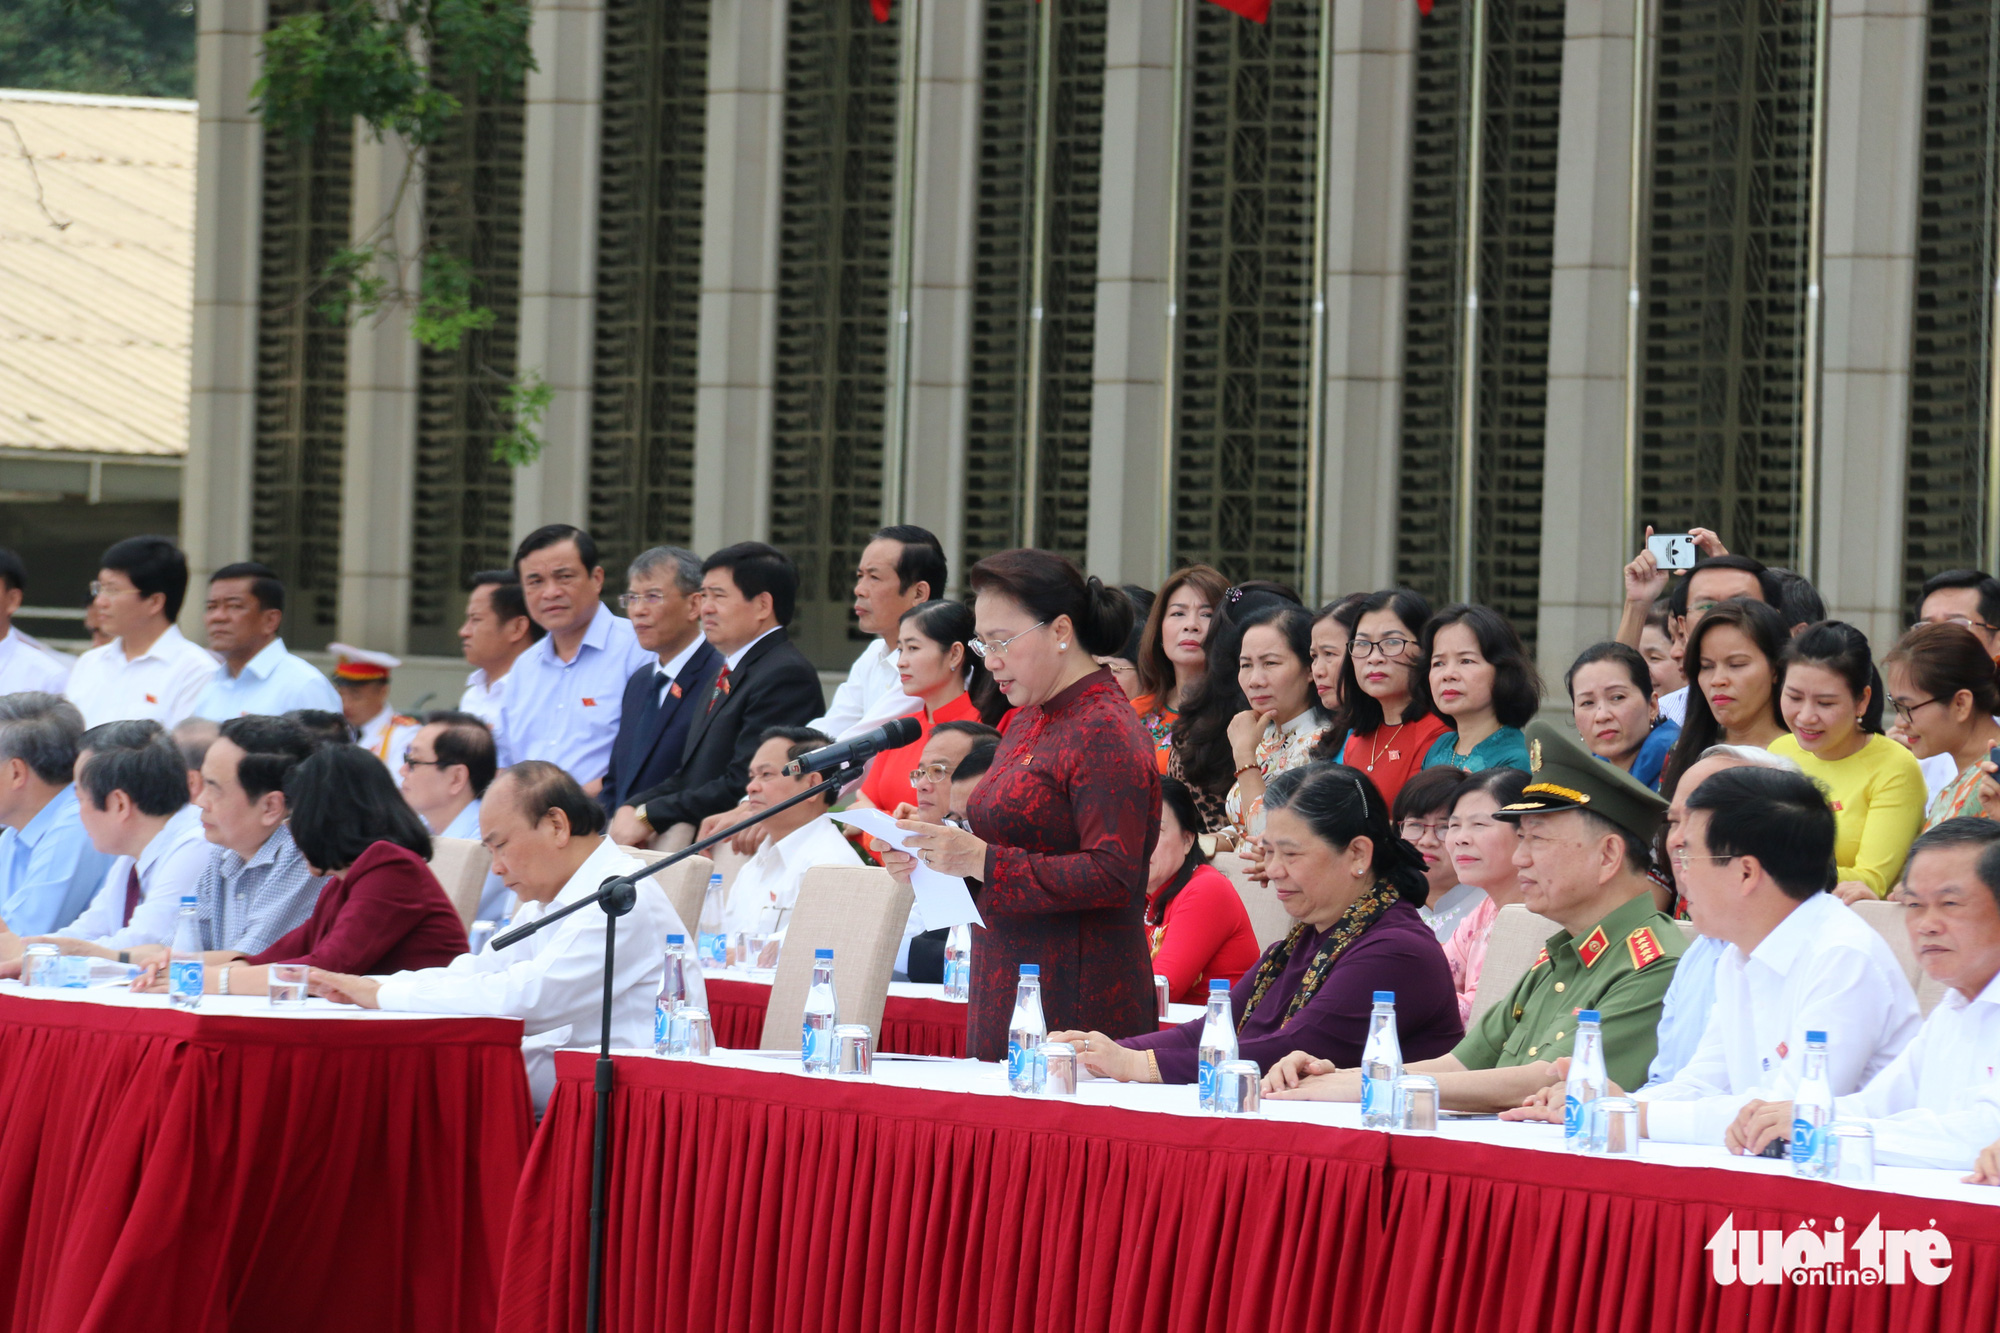 National Assembly Chairwoman Nguyen Thi Kim Ngan speaks at the launching ceremony of Vietnam's mounted mobile police force in Hanoi, Vietnam, June 8, 2020. Photo: Tien Long / Tuoi Tre